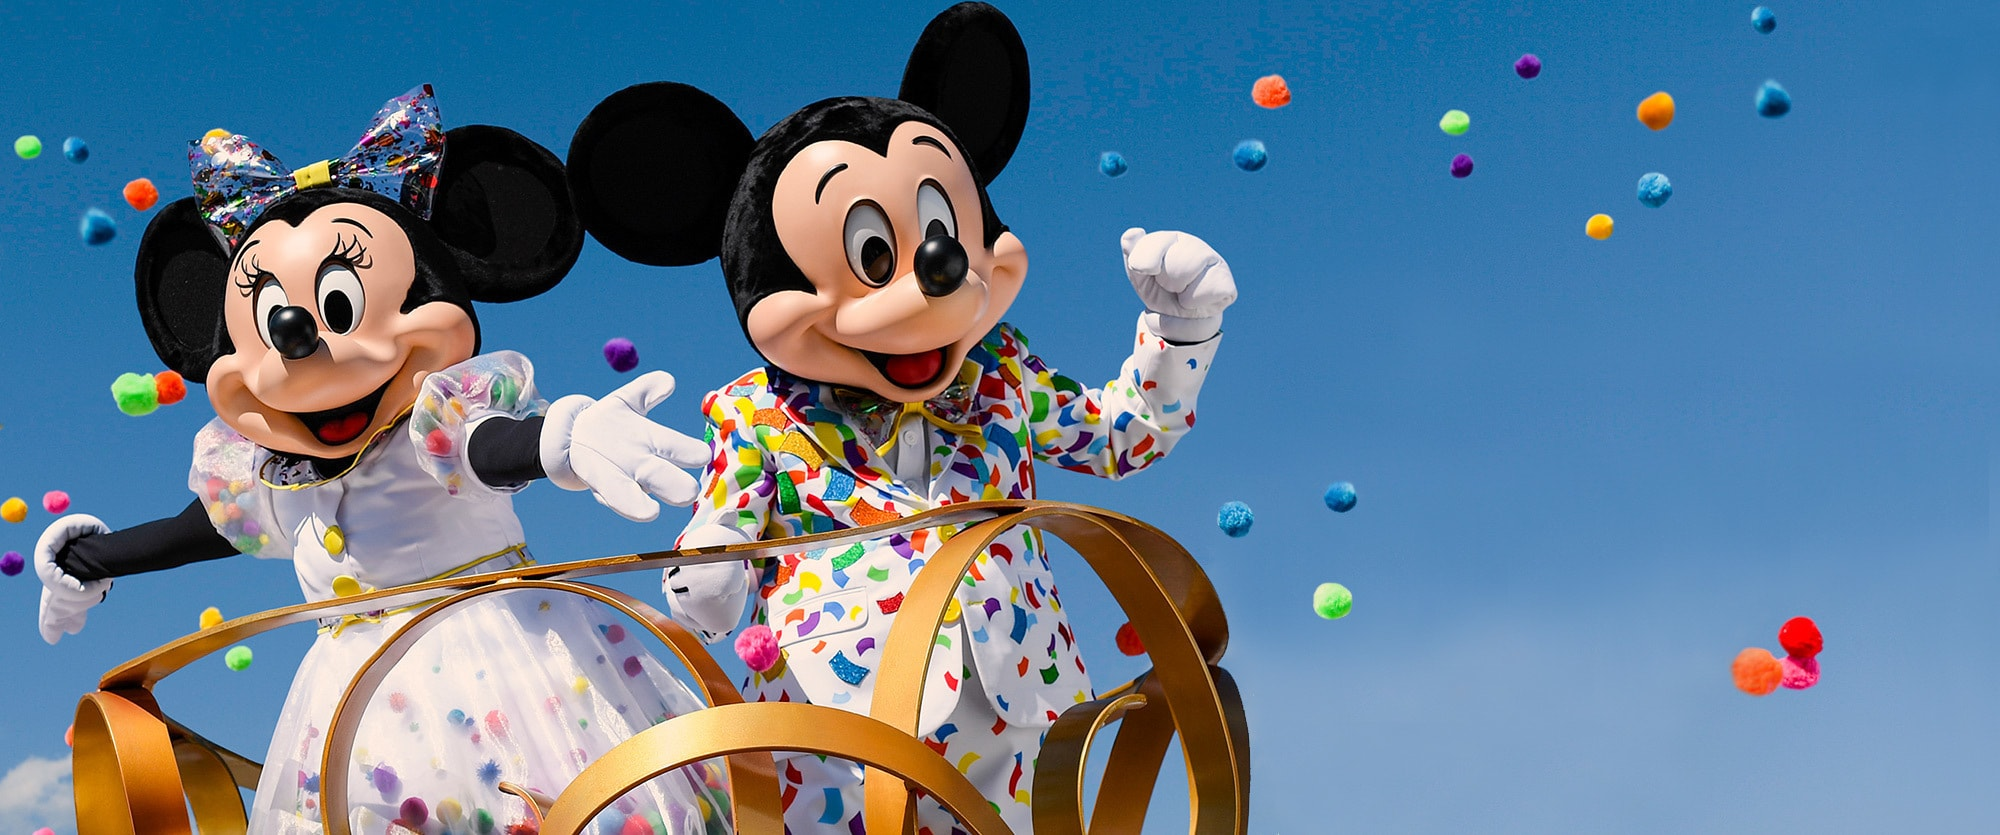 Walt Disney World | Now More than Ever Article